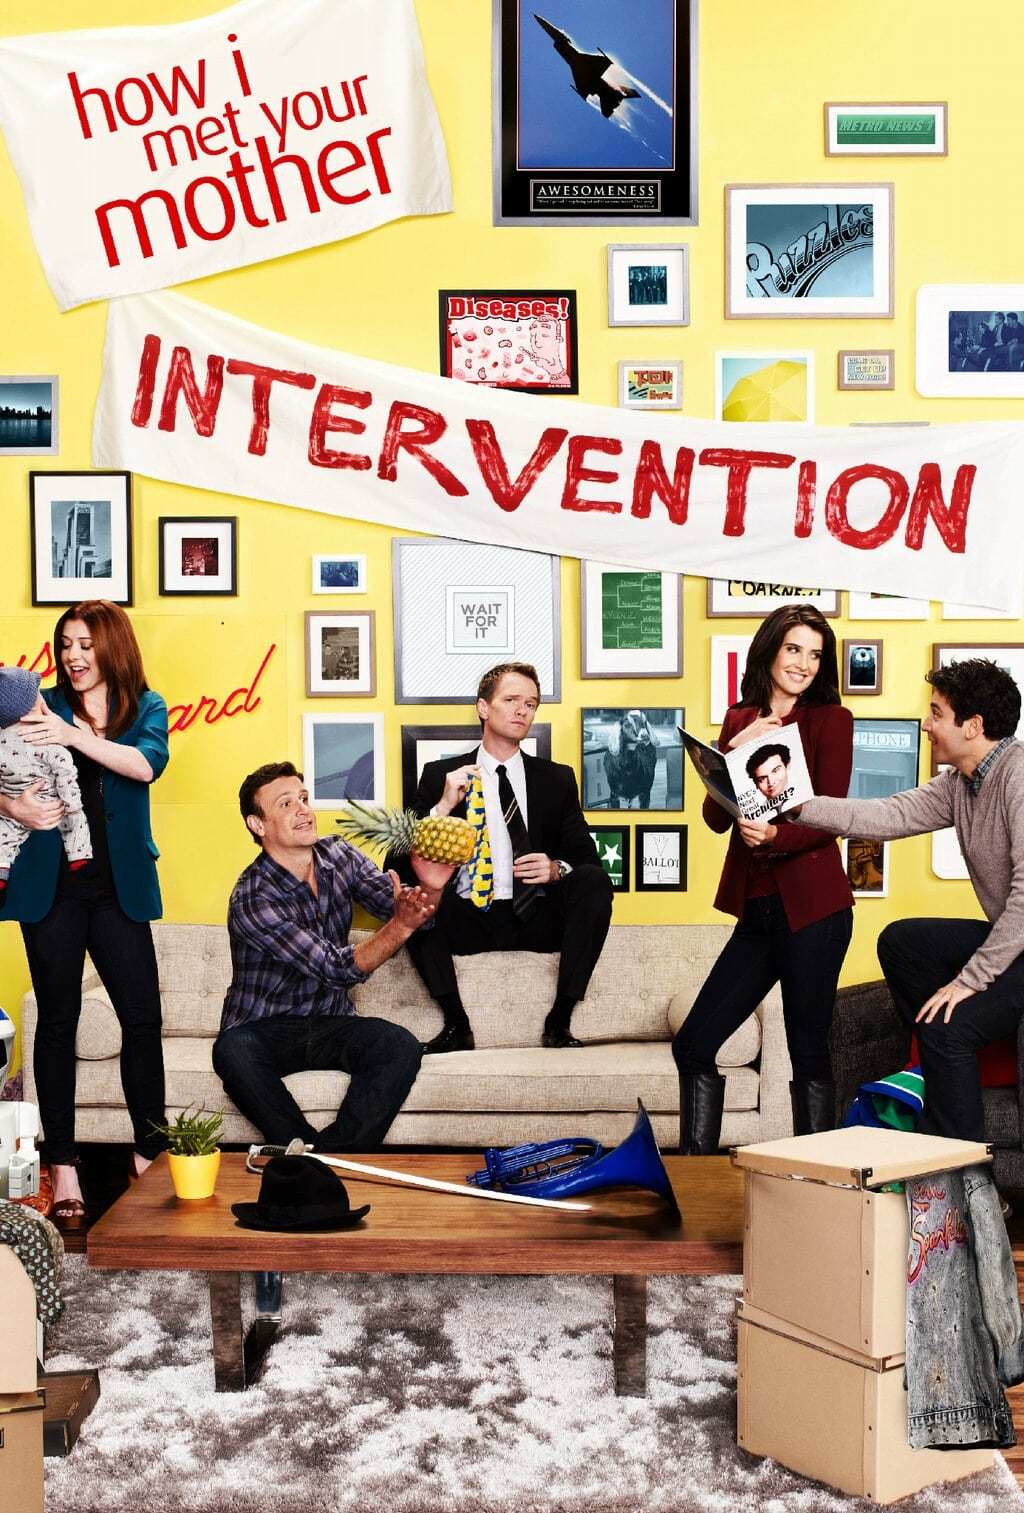 How I Met Your Mother Intervention poster